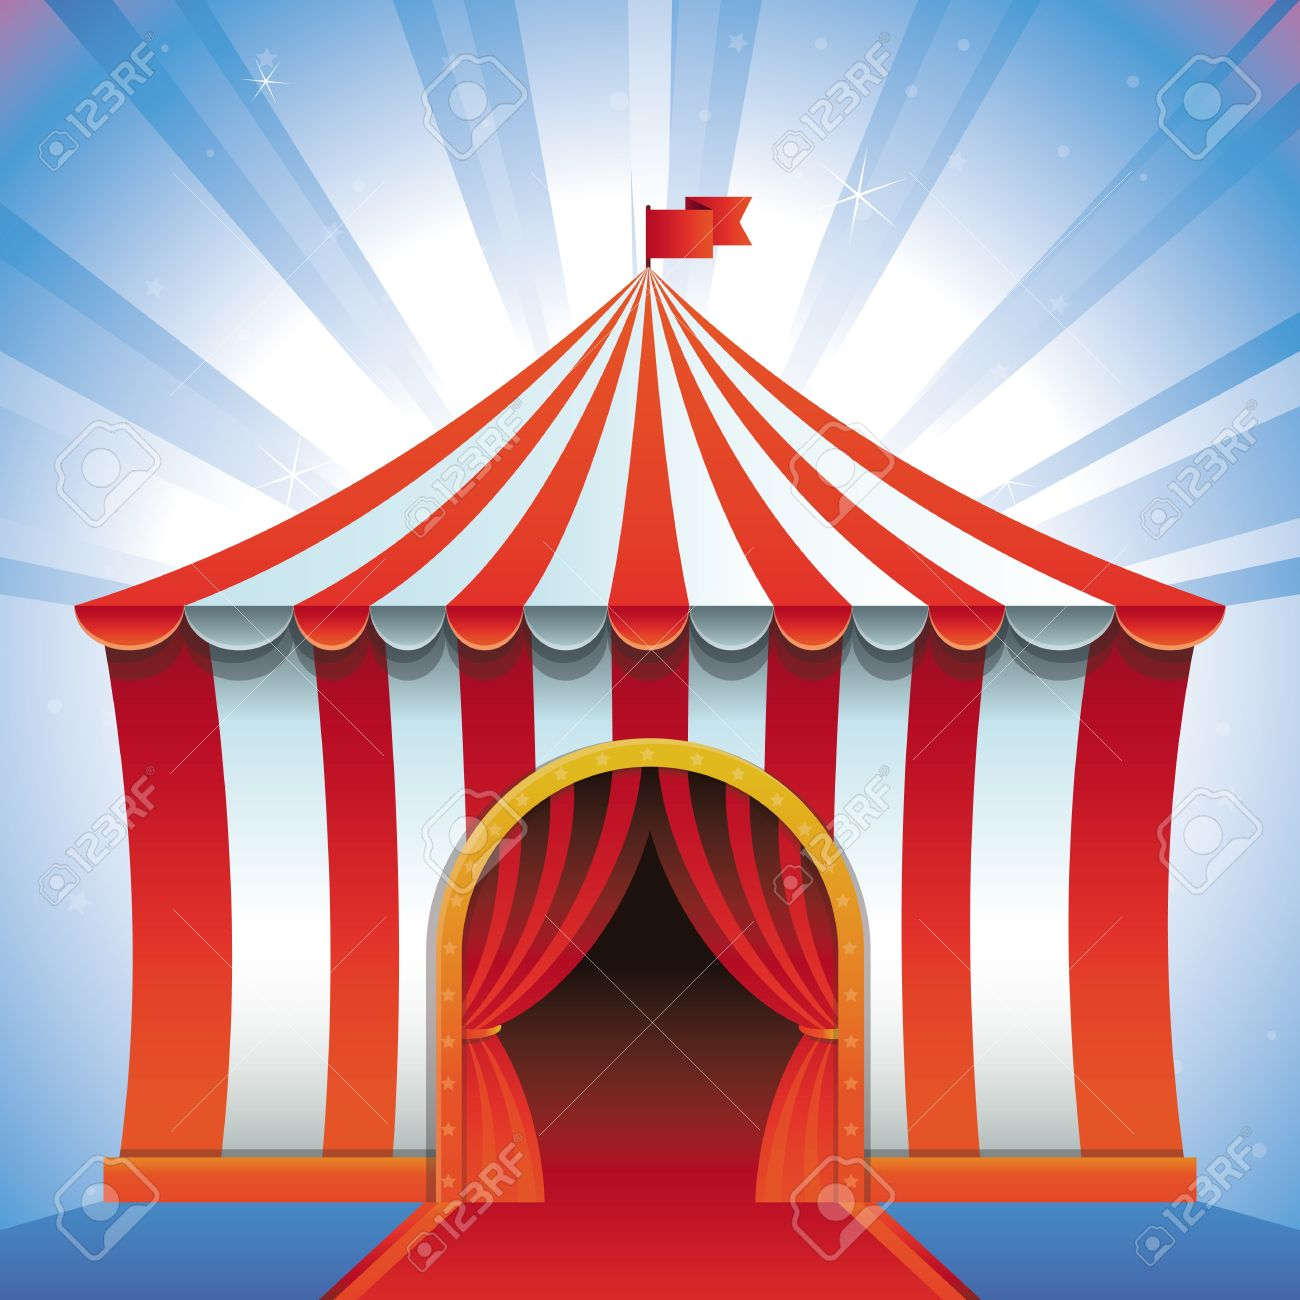 circus tent - bright icon - entertainment concept Stock Vector - 19375074 & Circus Tent - Bright Icon - Entertainment Concept Royalty Free ...